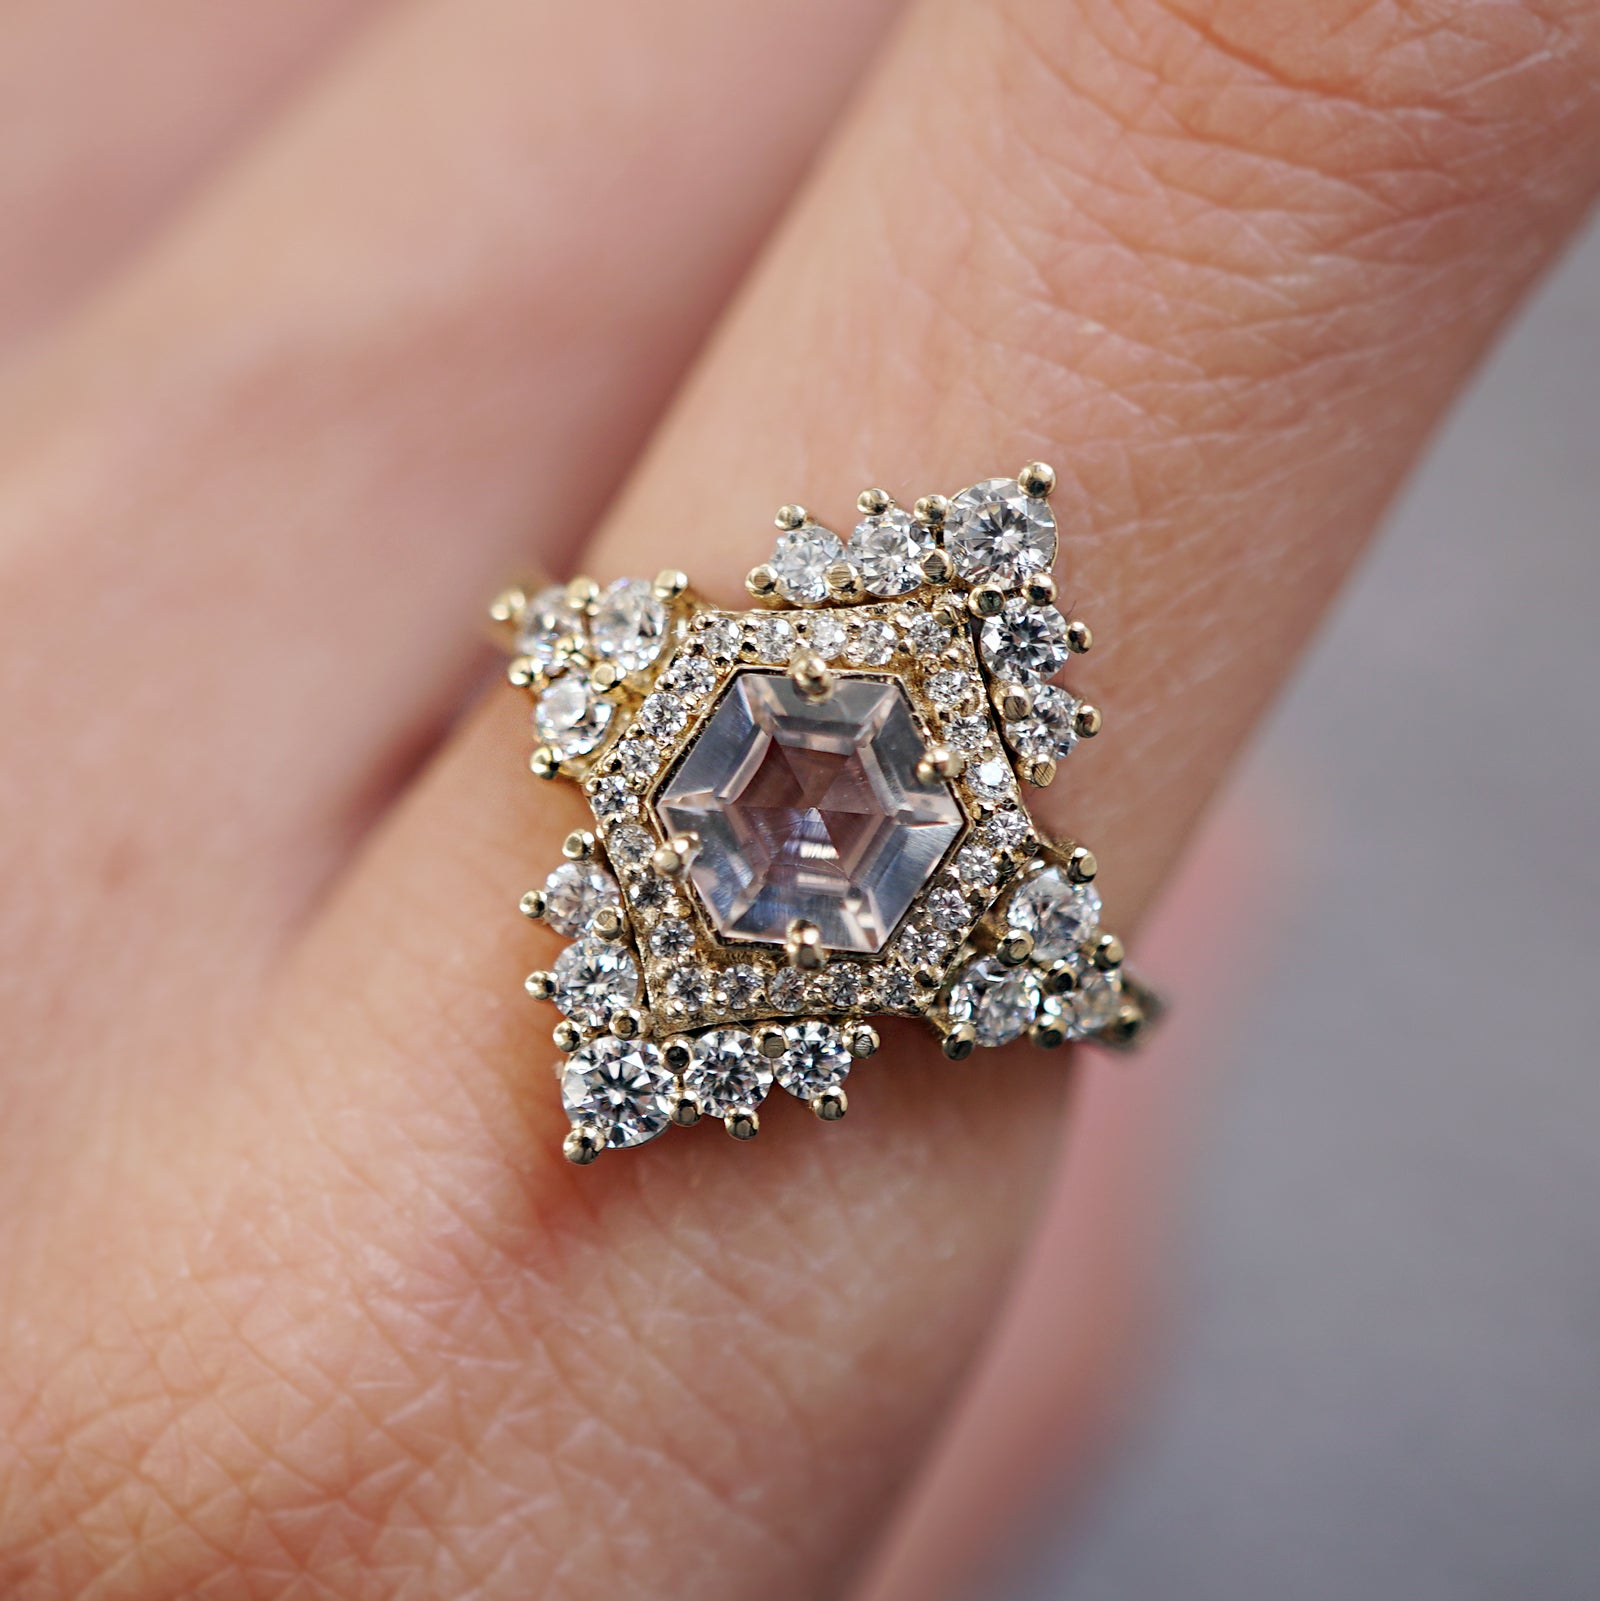 Chandelier Morganite Diamond Ring